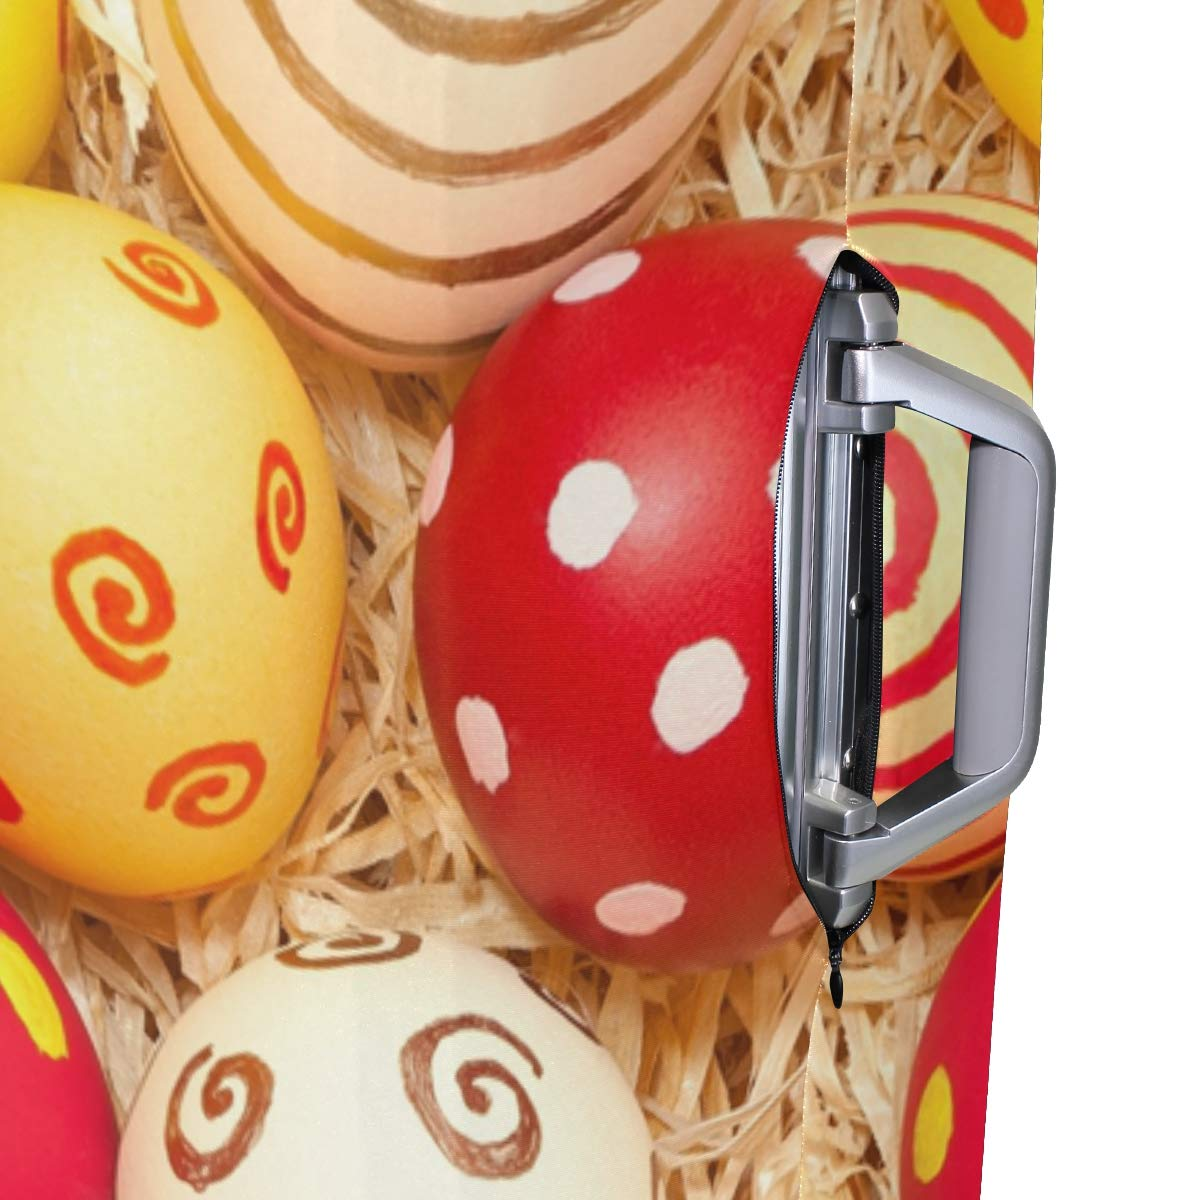 Travel Luggage Cover Easter Eggs Straw Suitcase Protector Fits 22-24 Inch Washable Baggage Covers